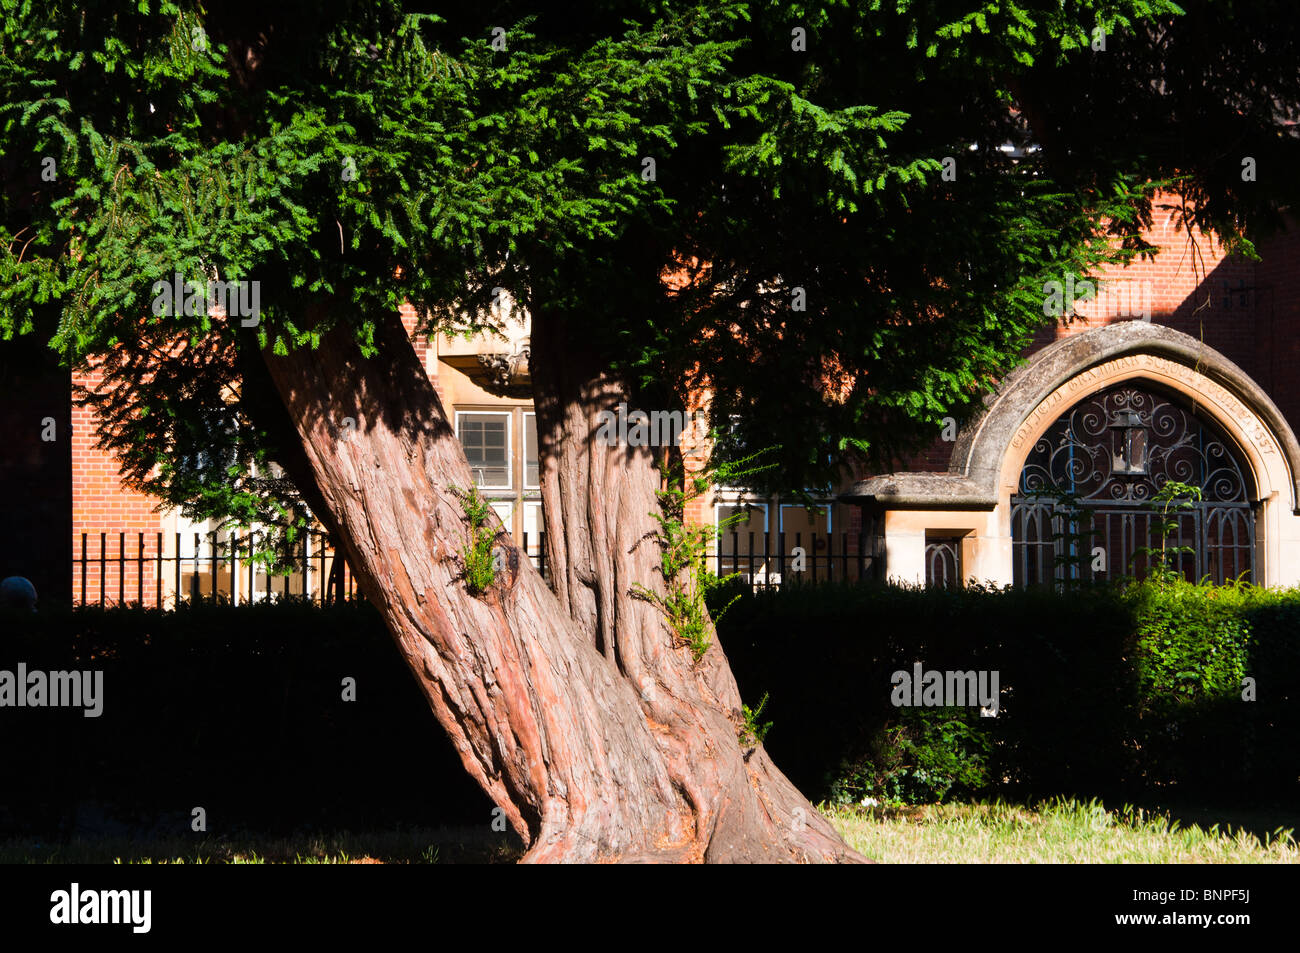 The entrance gate of Enfield Grammar school, London - Stock Image